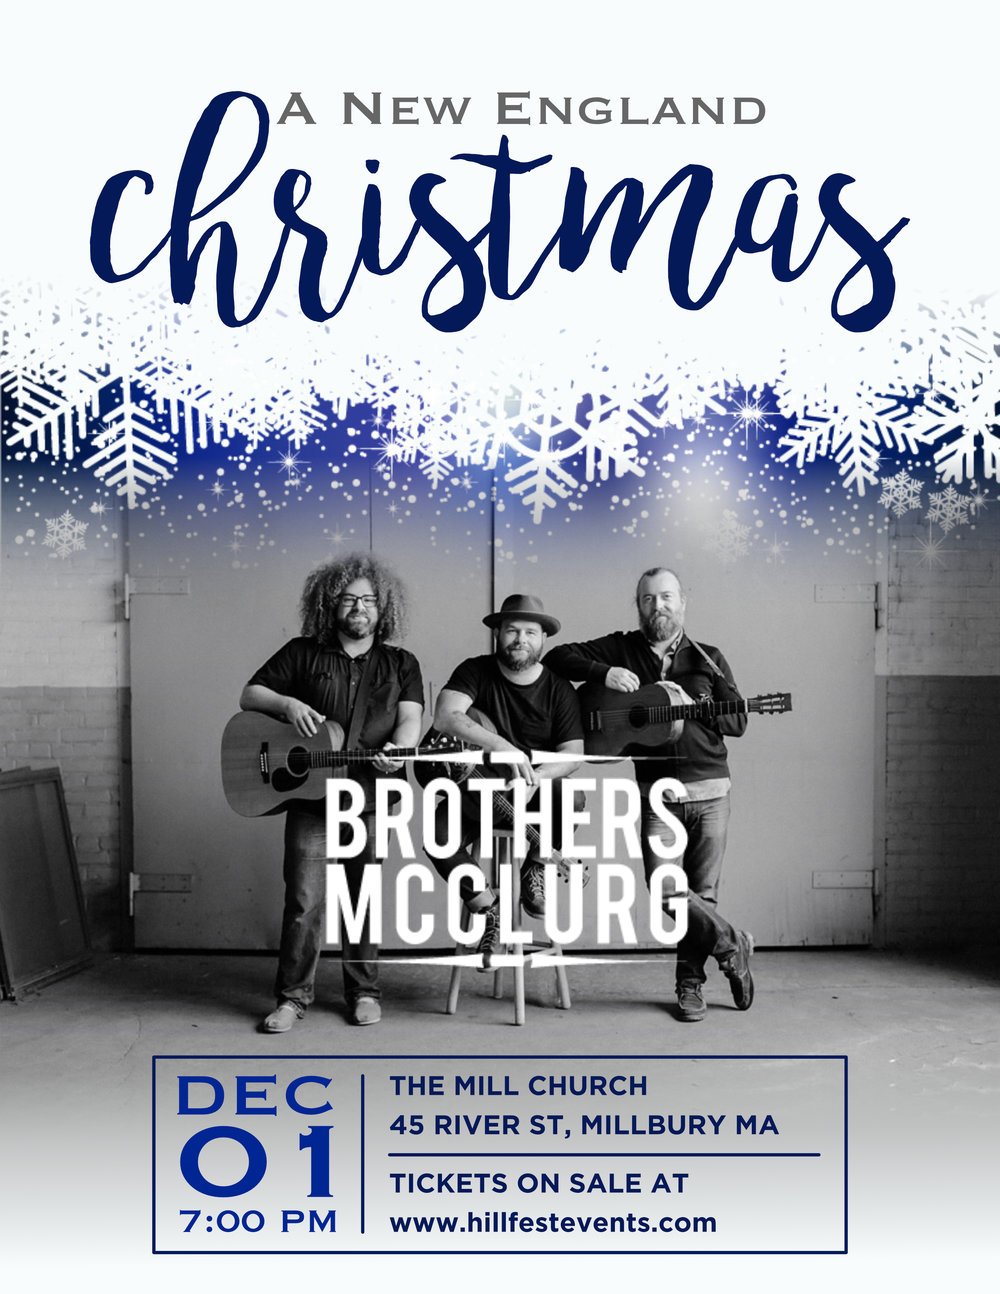 Brothers McClurg flyer_Mill Church.jpg